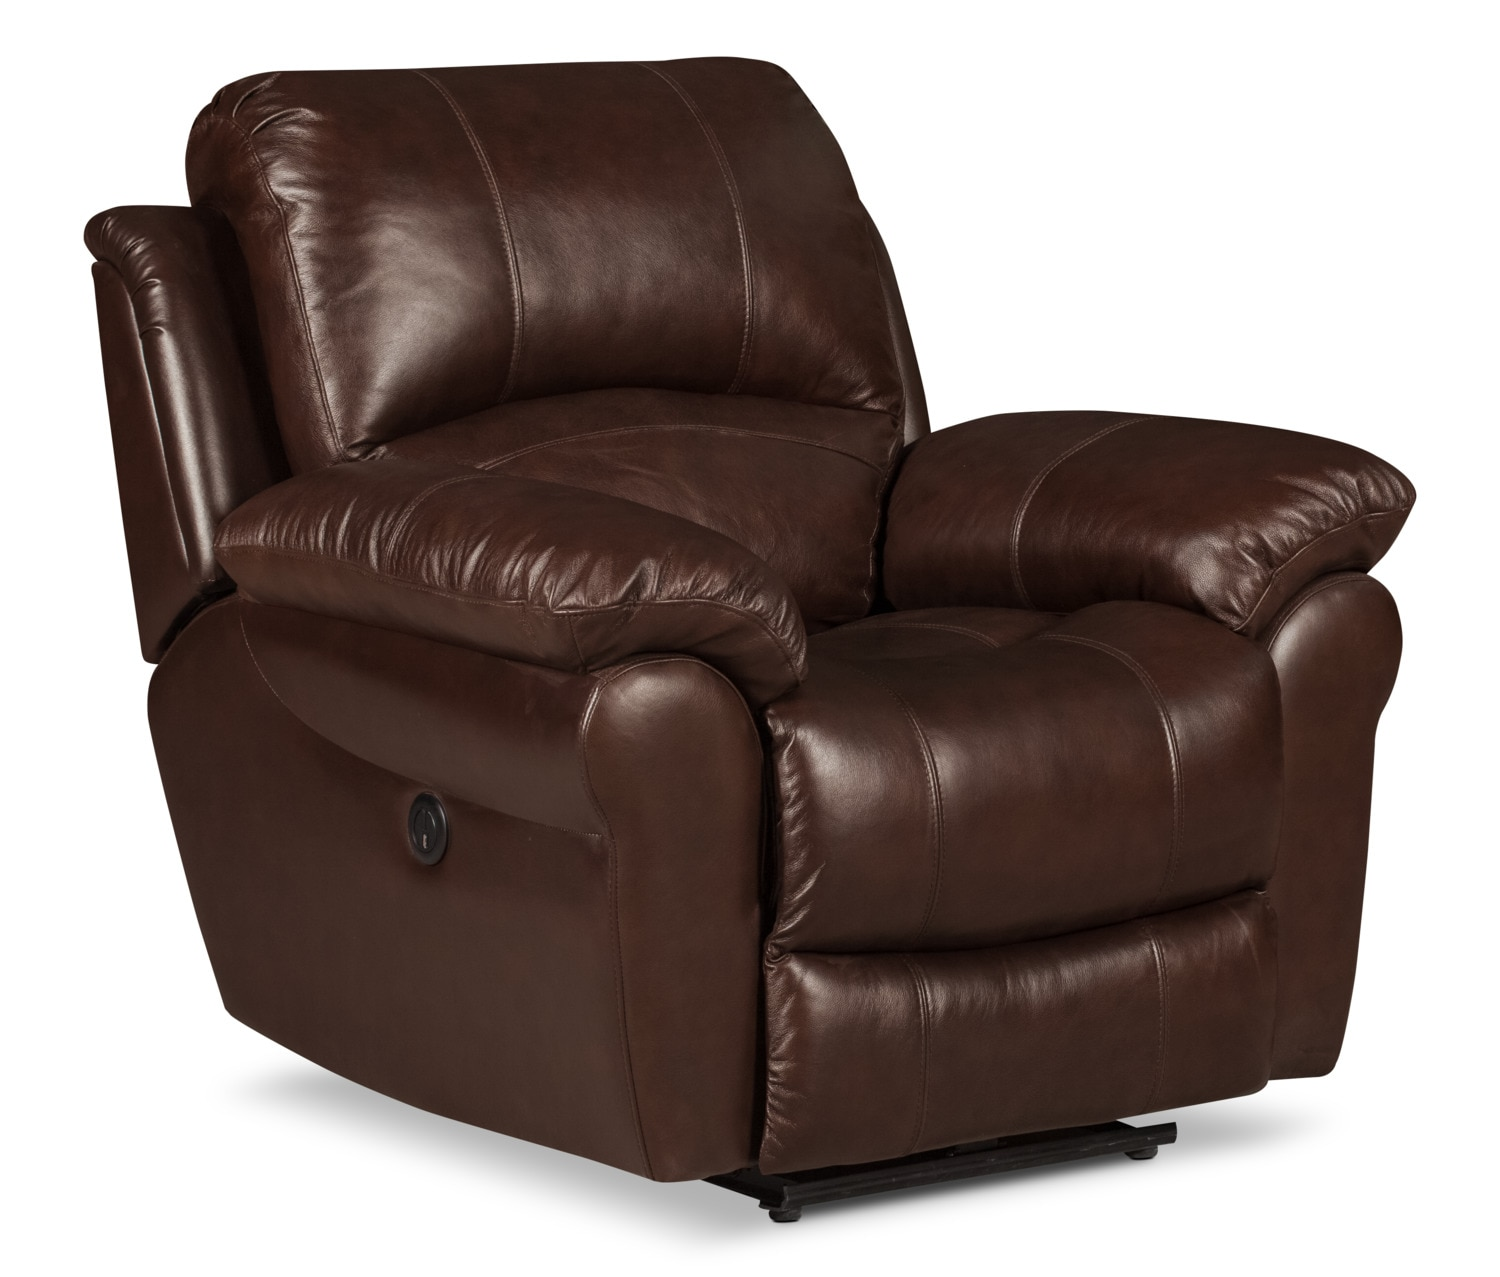 Living Room Furniture - Kobe Genuine Leather Power Reclining Chair – Brown